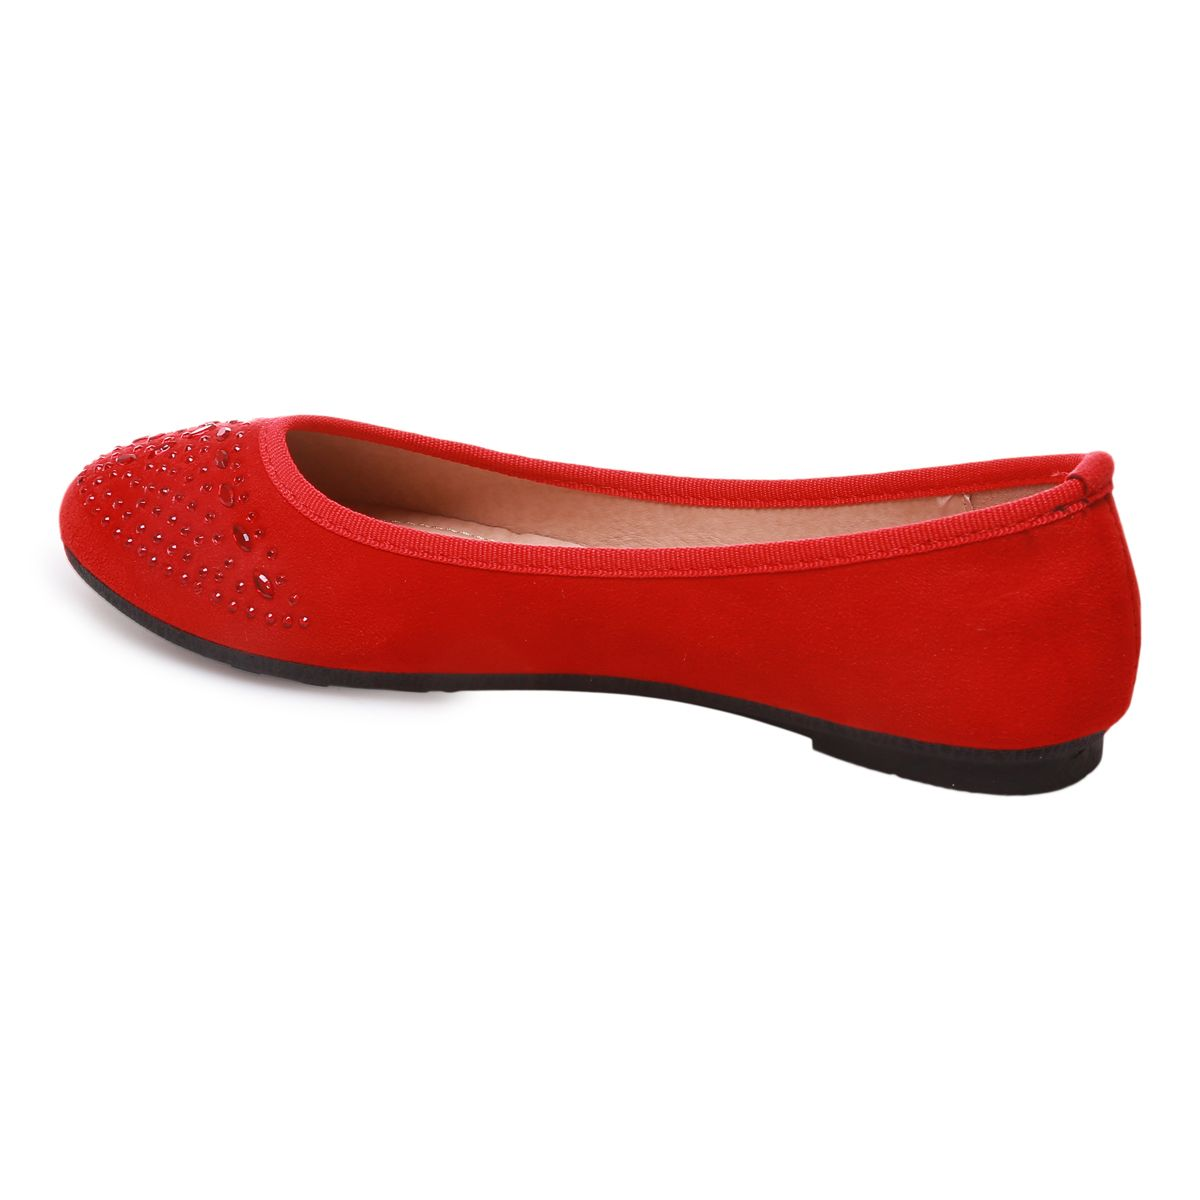 Ballerines rouges en velours avec strass